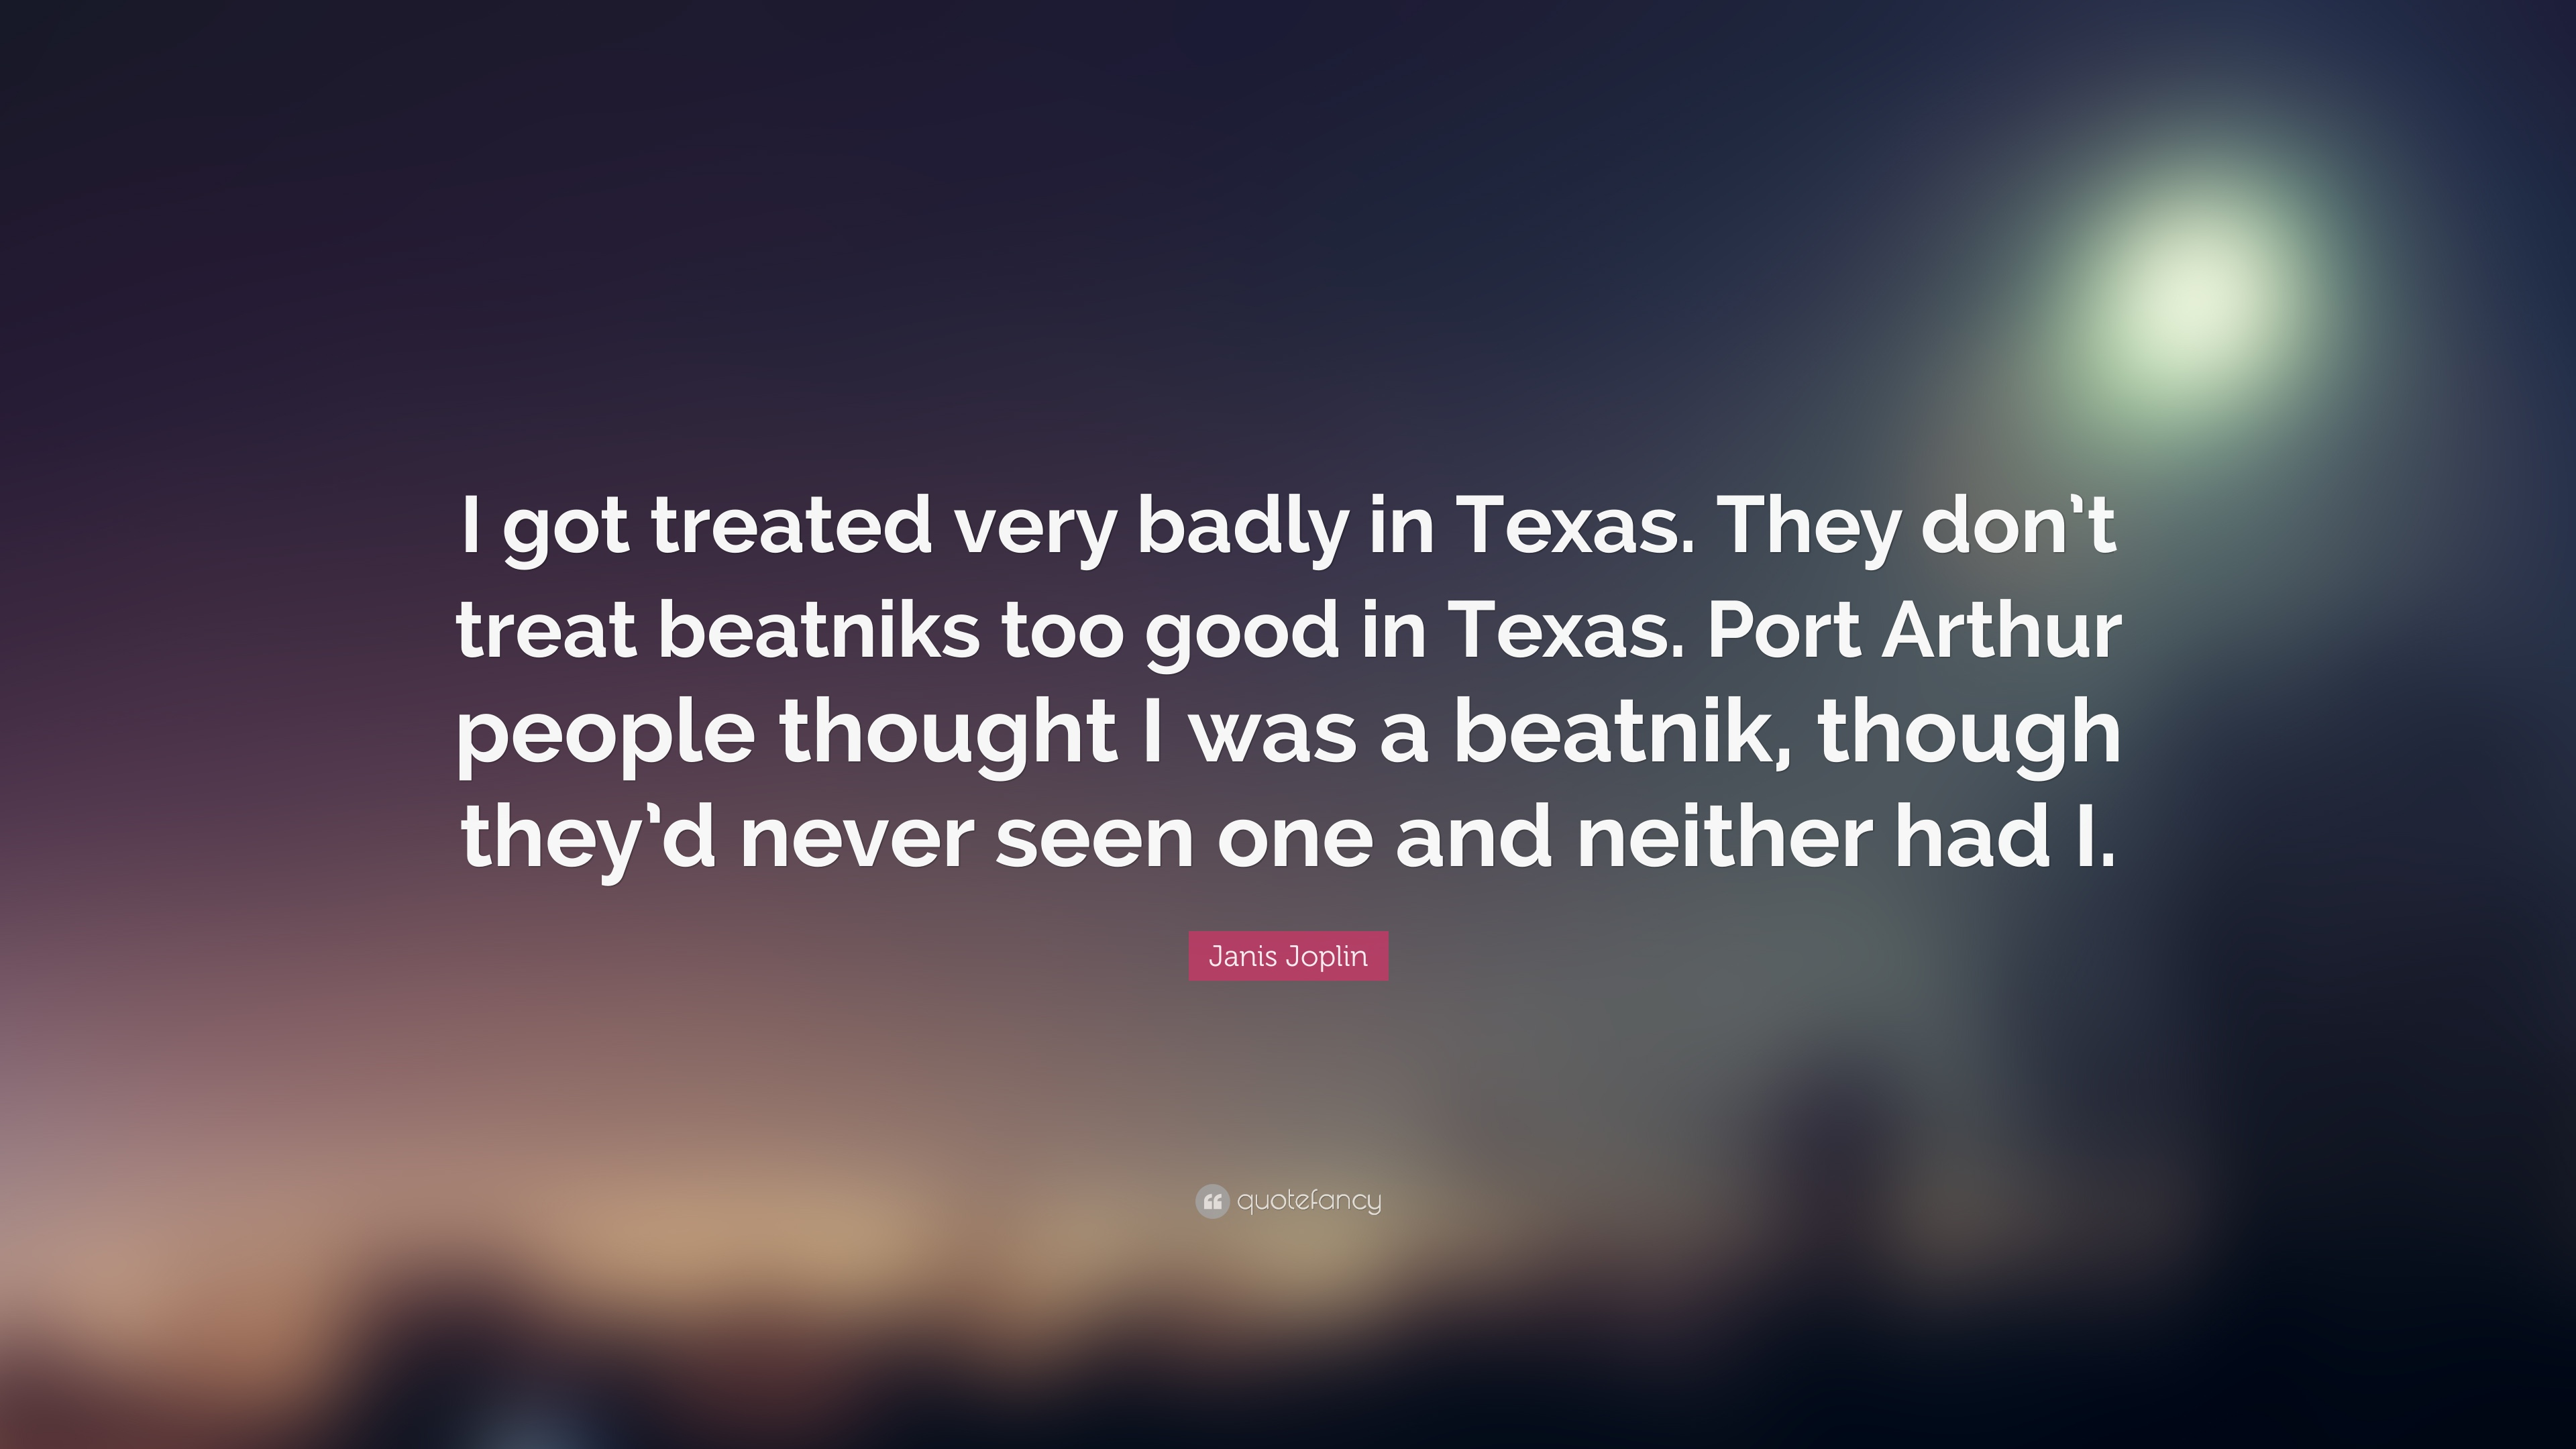 Wall Quote JANIS JOPLIN I got treated very badly in Texas They don/'t treat